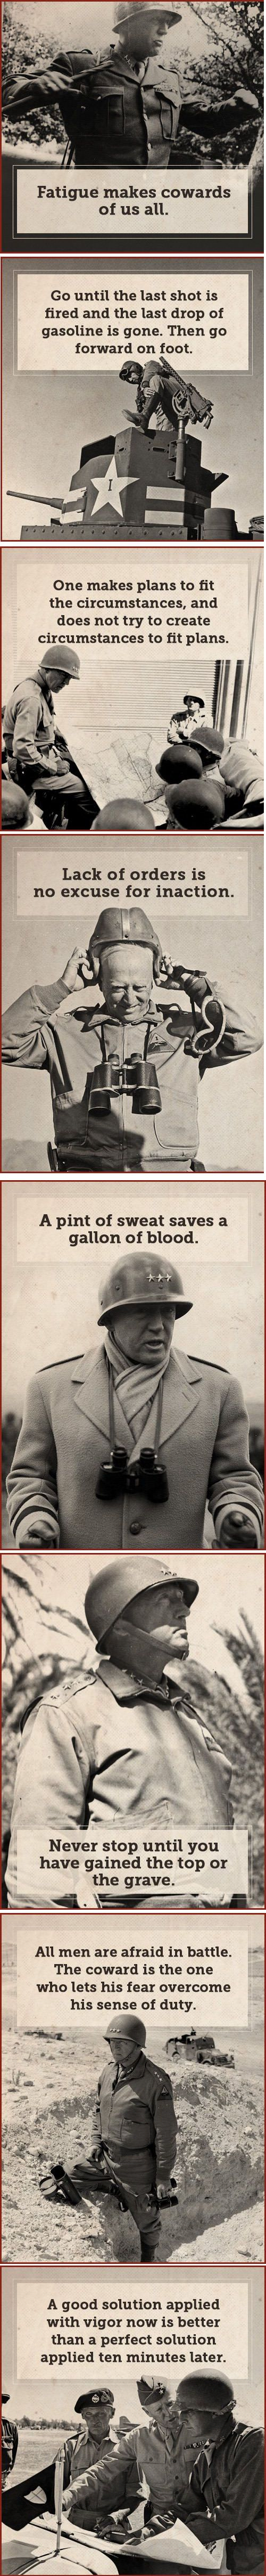 The Maxims of General George S. Patton (from The Art of Manliness) - 9GAG